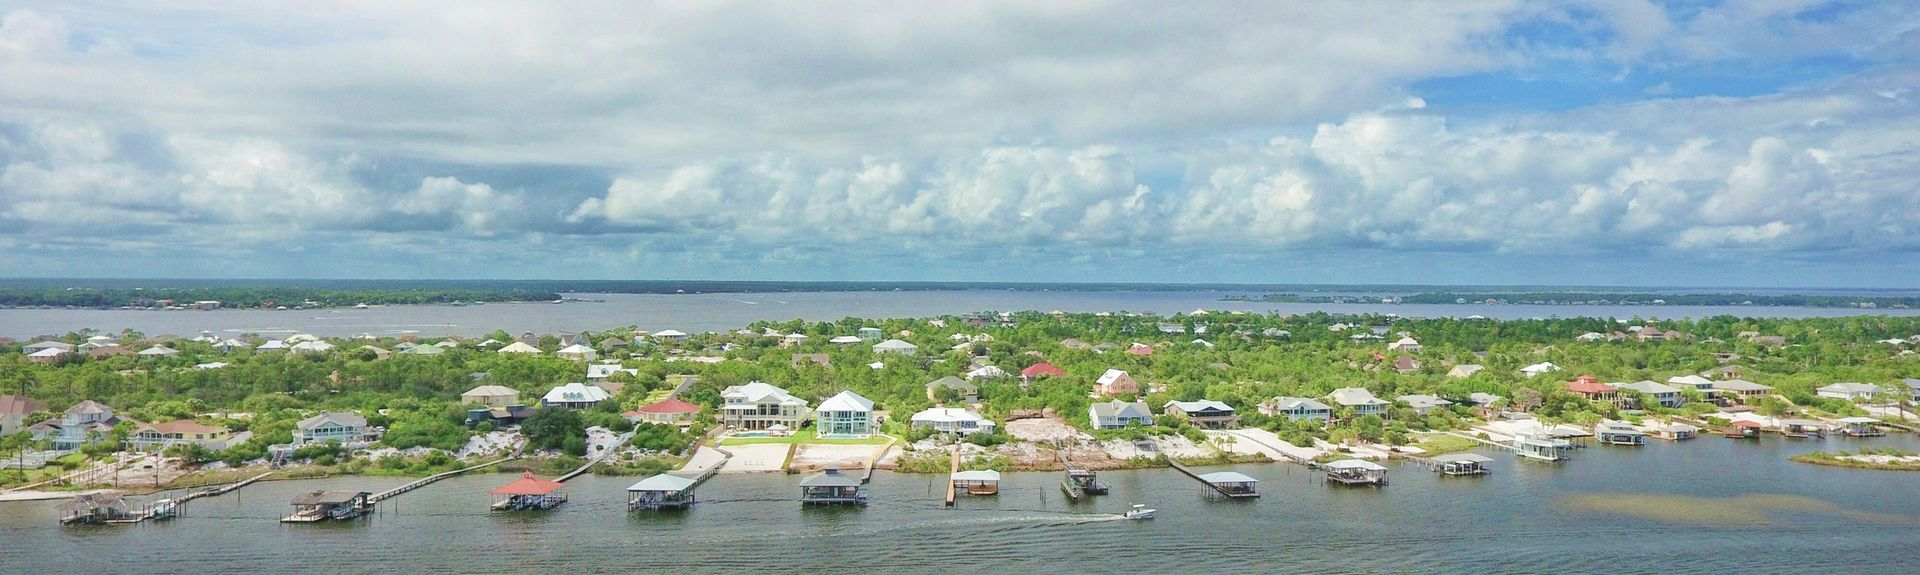 Ono Island, Orange Beach, Alabama, Estados Unidos